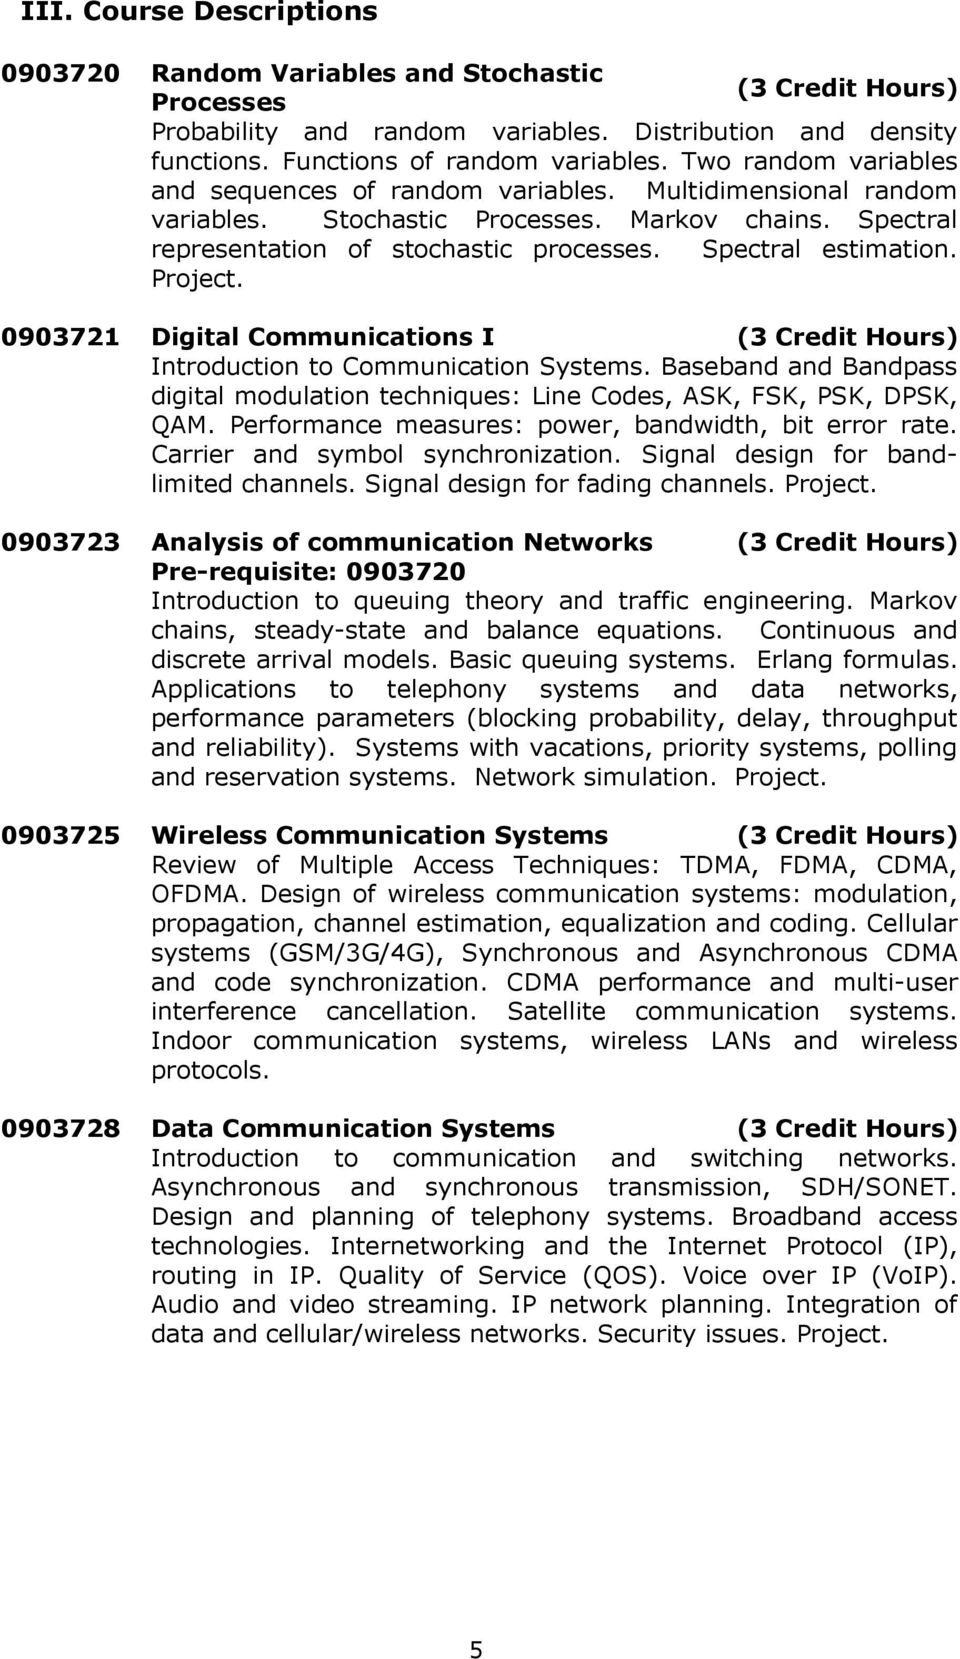 Project. 0903721 Digital Communications I (3 Credit Hours) Introduction to Communication Systems. Baseband and Bandpass digital modulation techniques: Line Codes, ASK, FSK, PSK, DPSK, QAM.